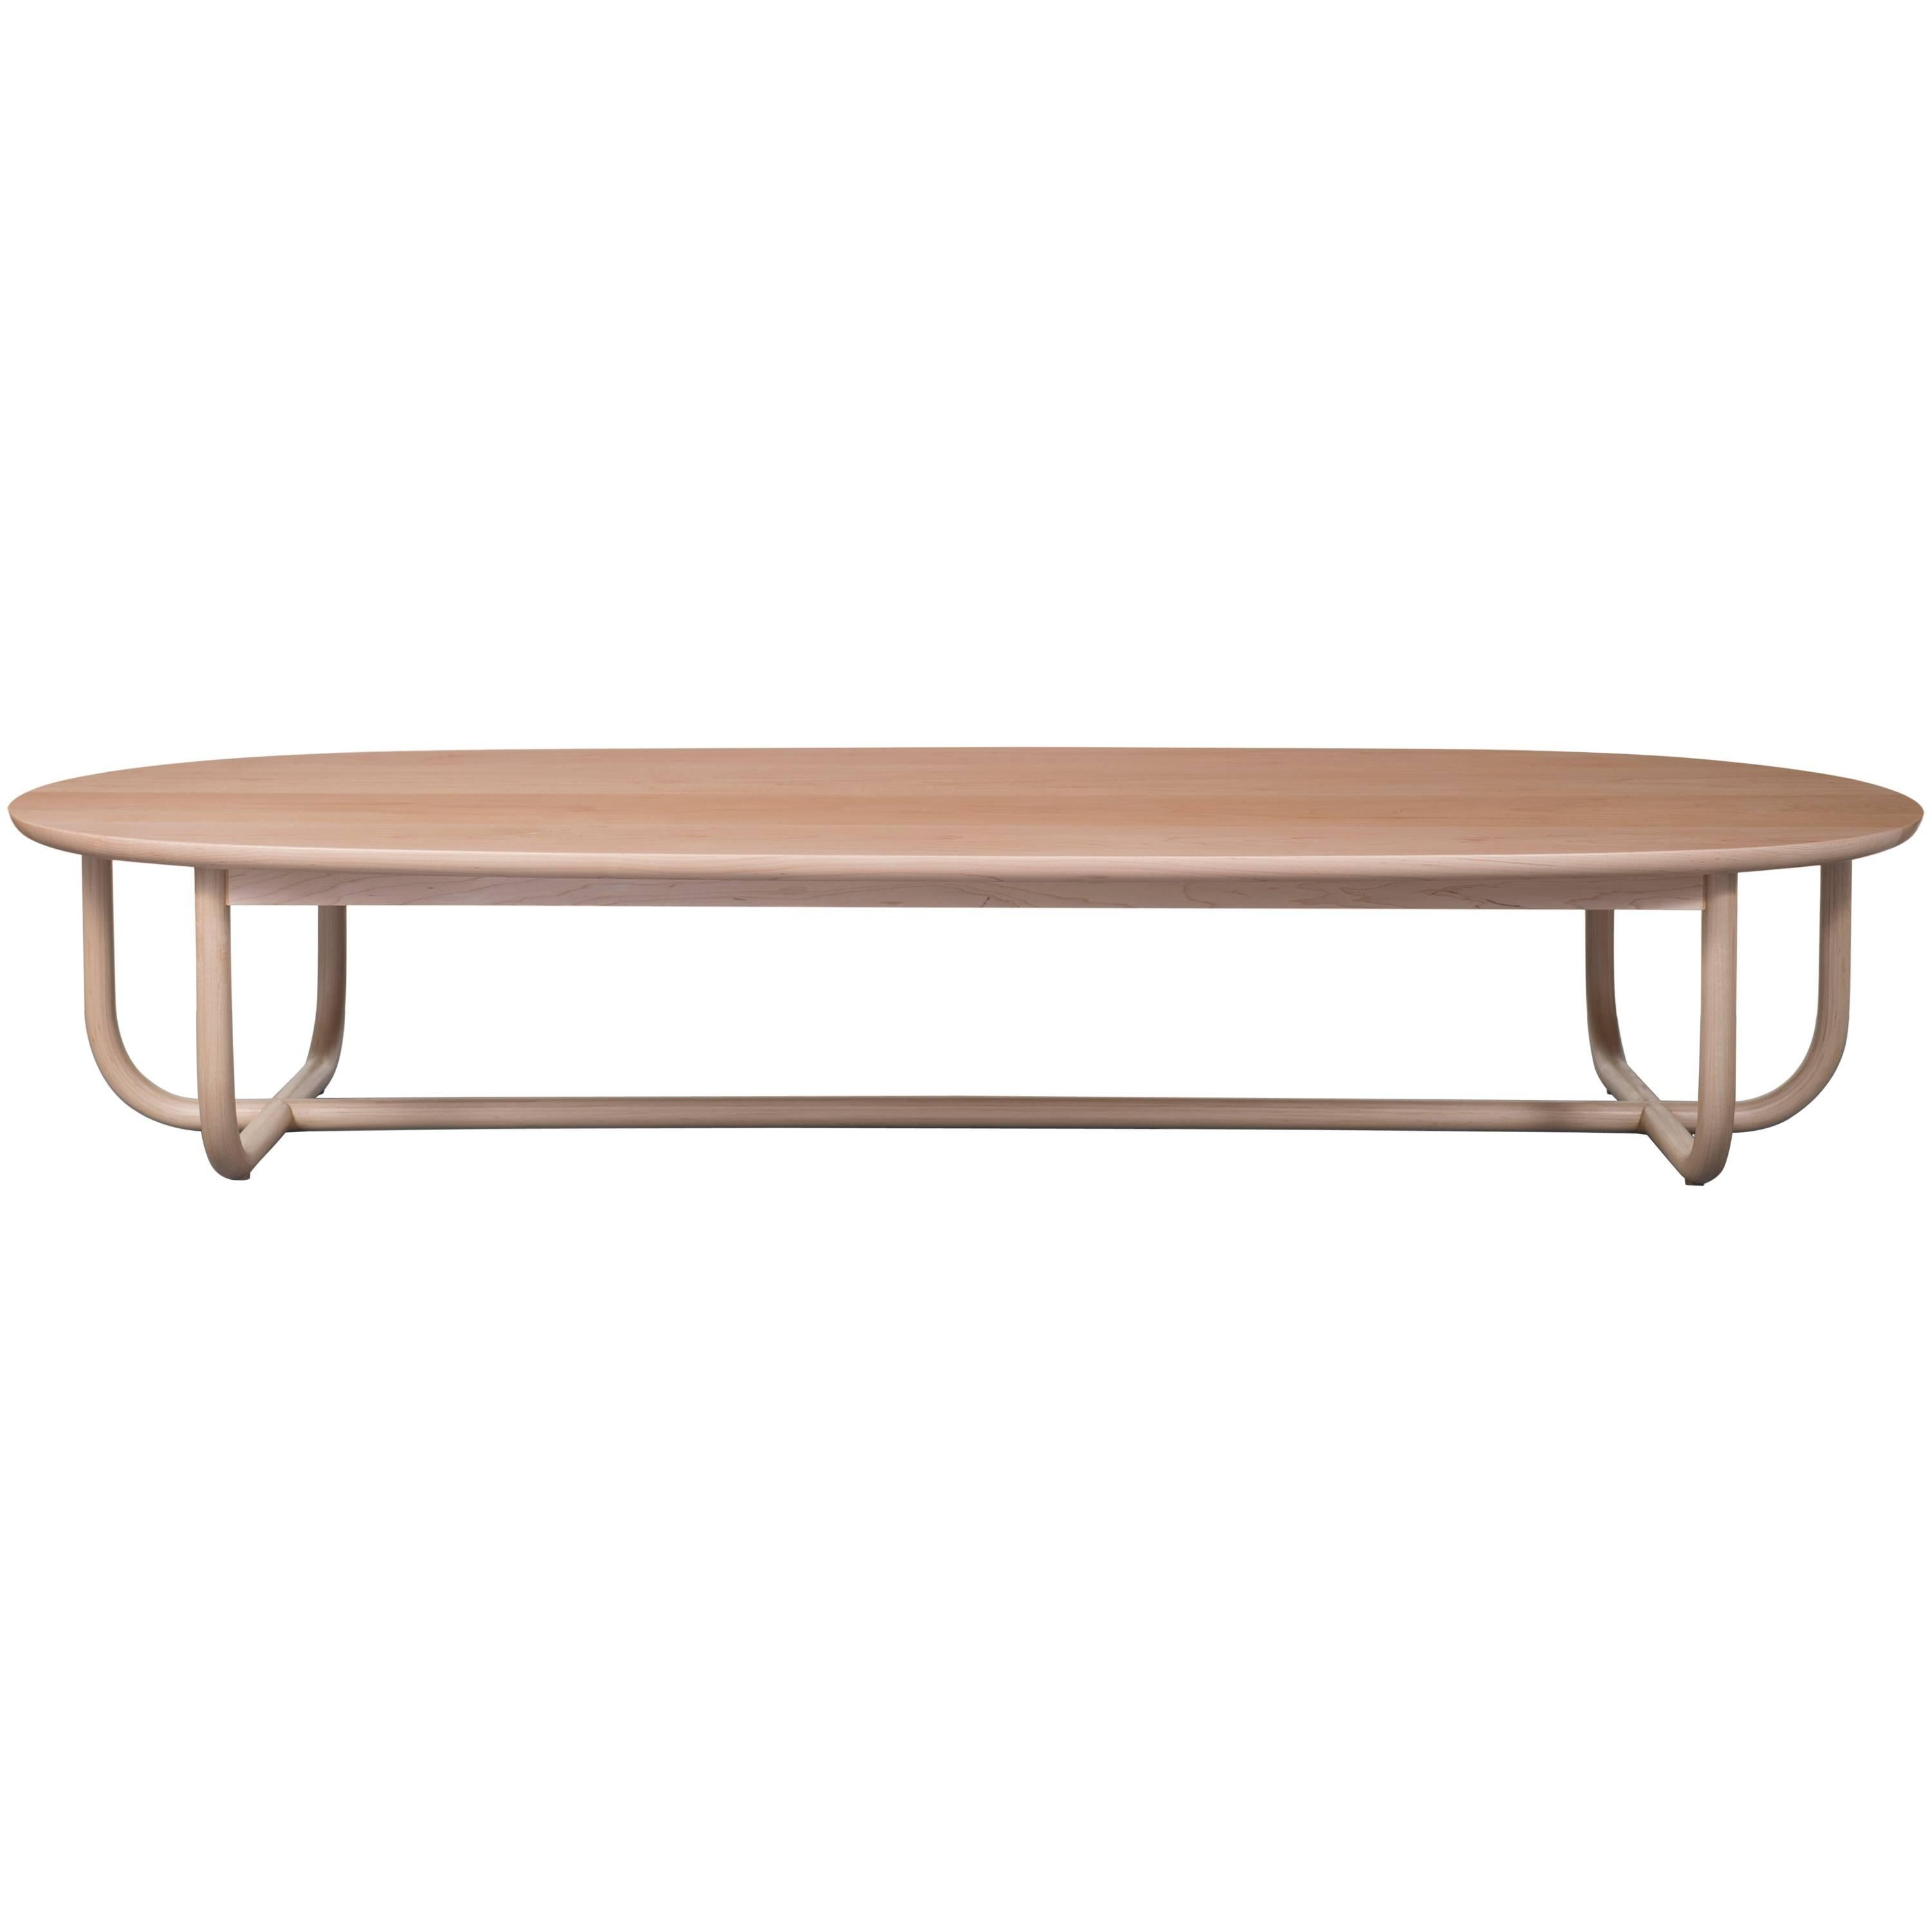 Gathering Low Table in Solid Wood by Bowen Liu